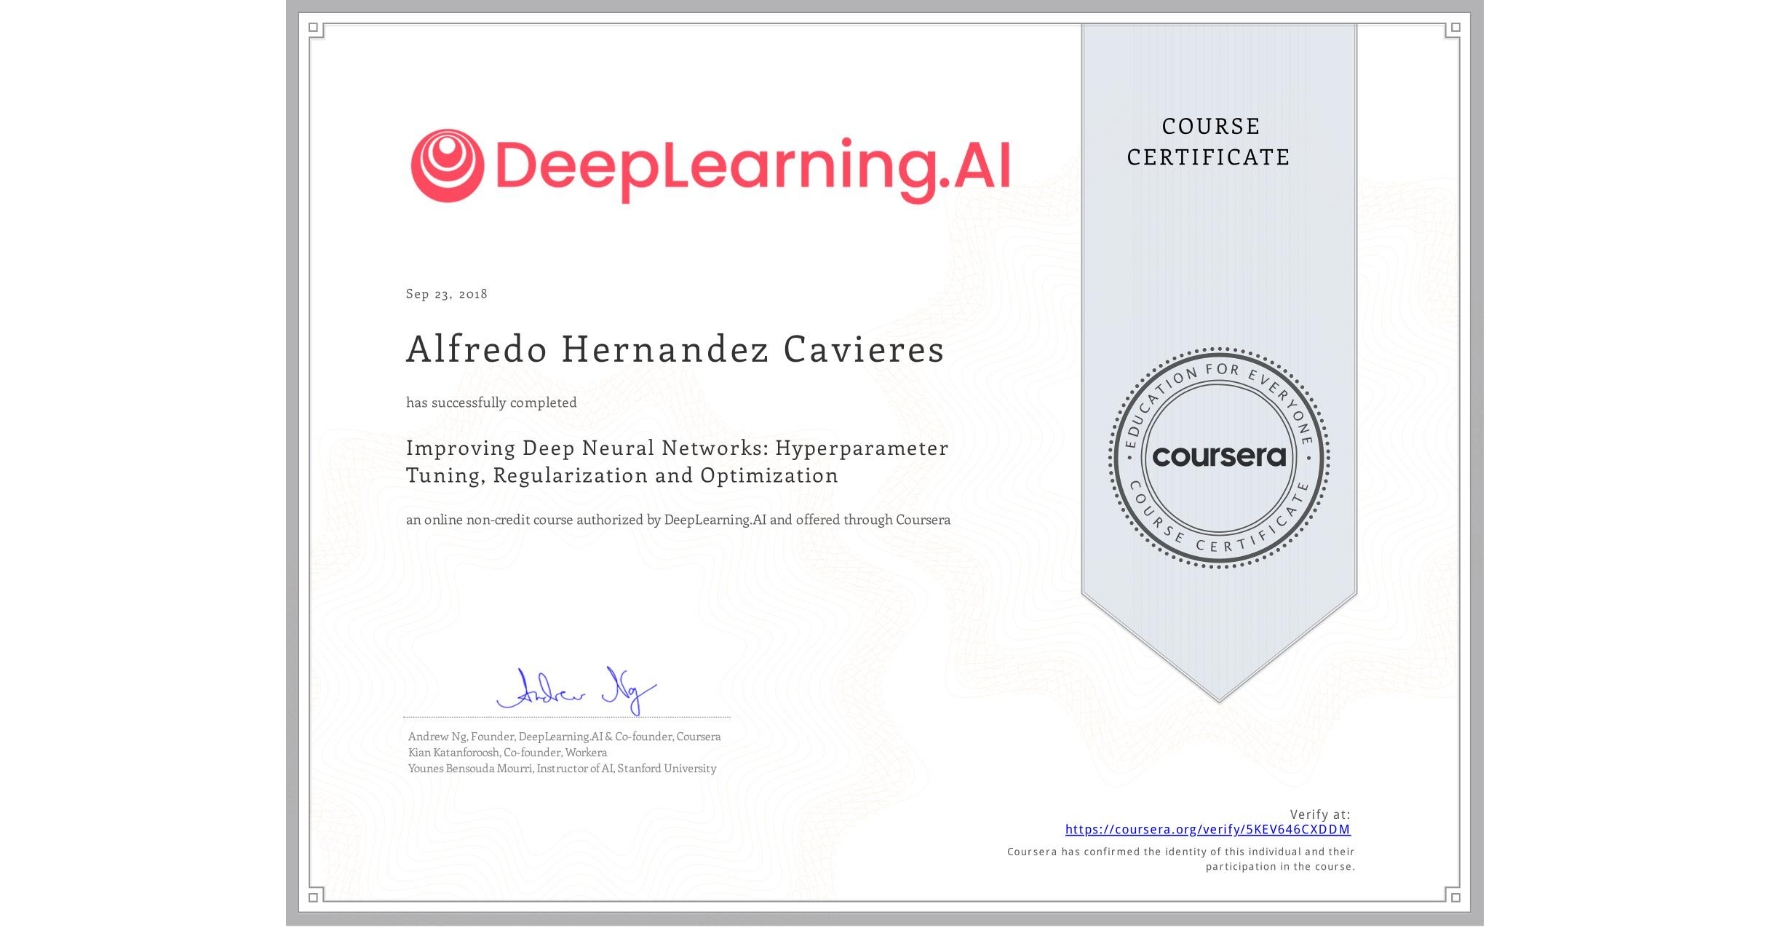 View certificate for Alfredo Hernandez Cavieres, Improving Deep Neural Networks: Hyperparameter tuning, Regularization and Optimization, an online non-credit course authorized by DeepLearning.AI and offered through Coursera